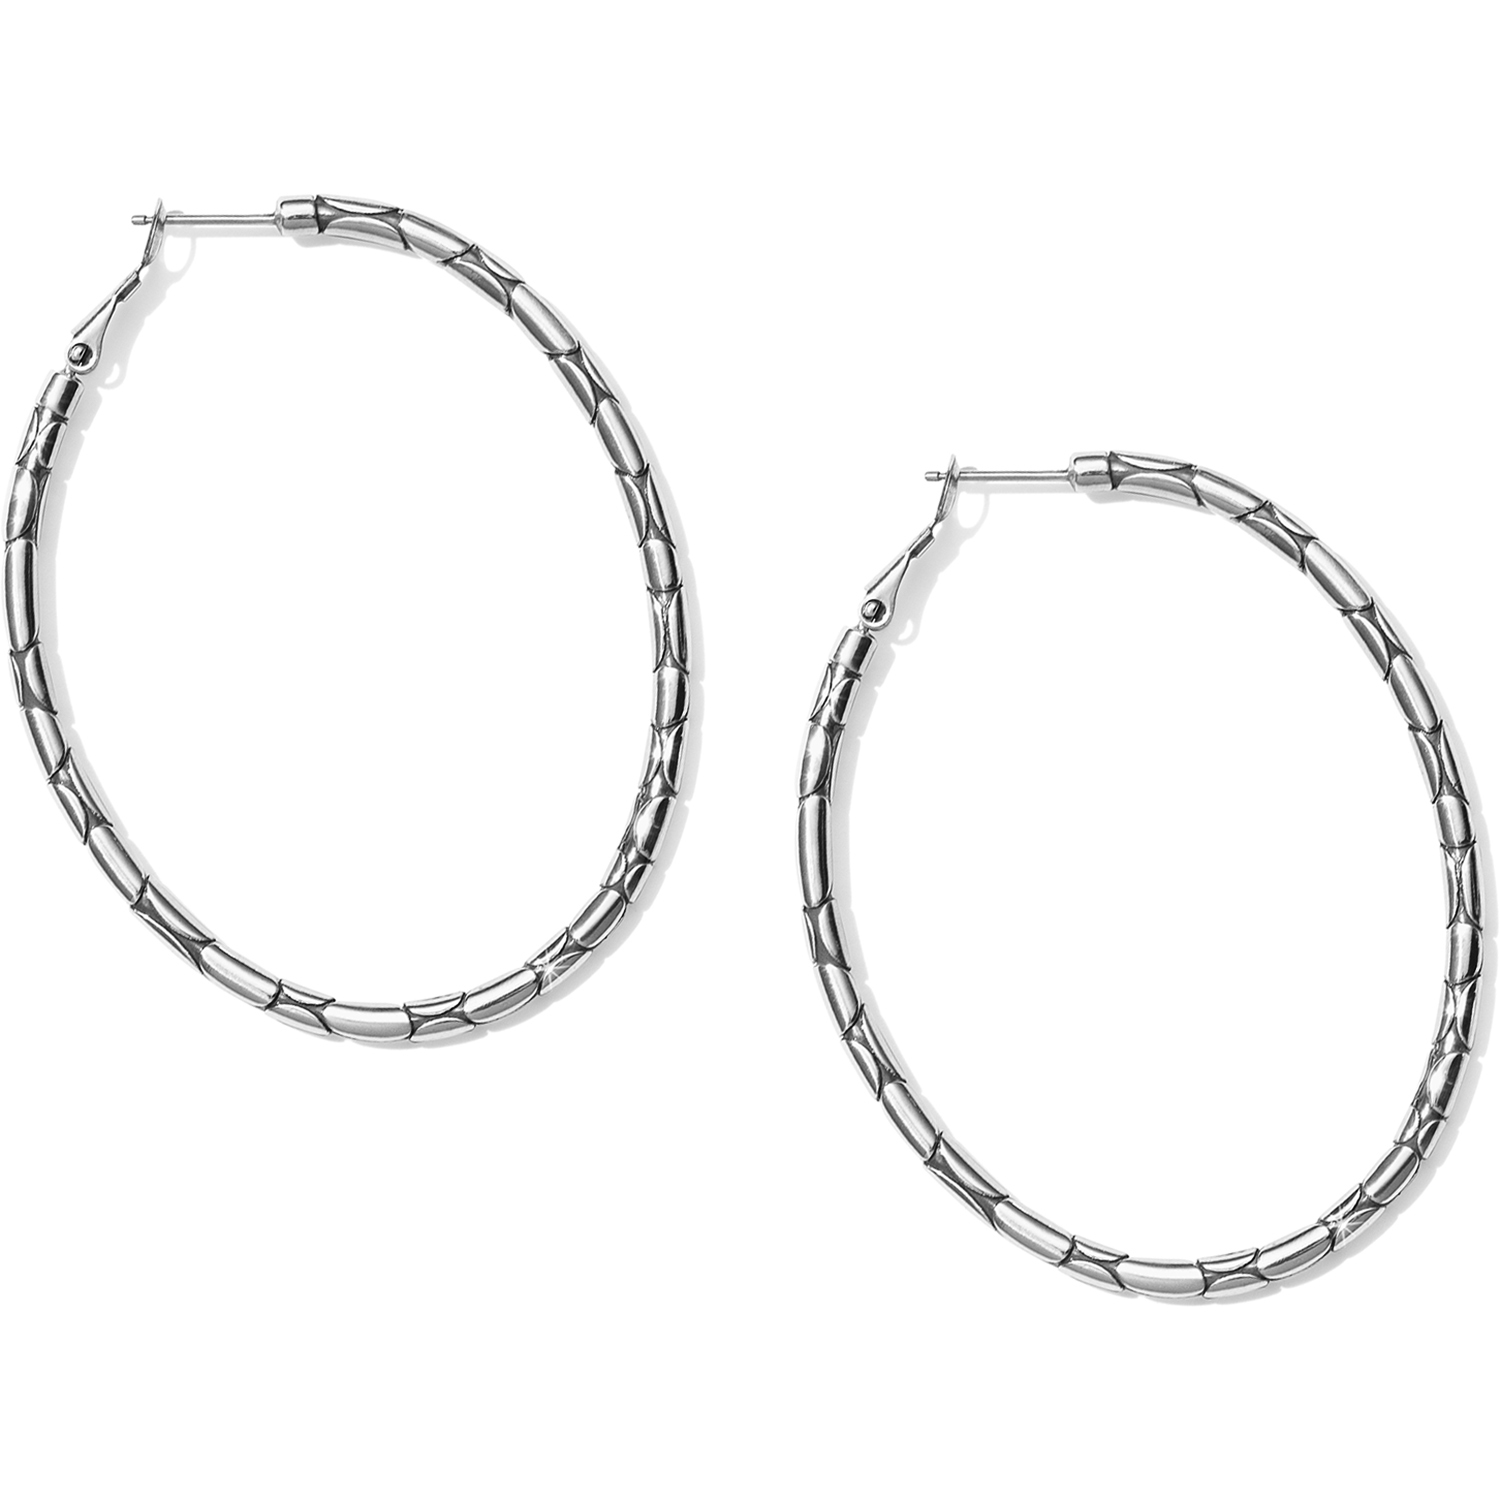 Pebble Large Oval Hoop from Brighton